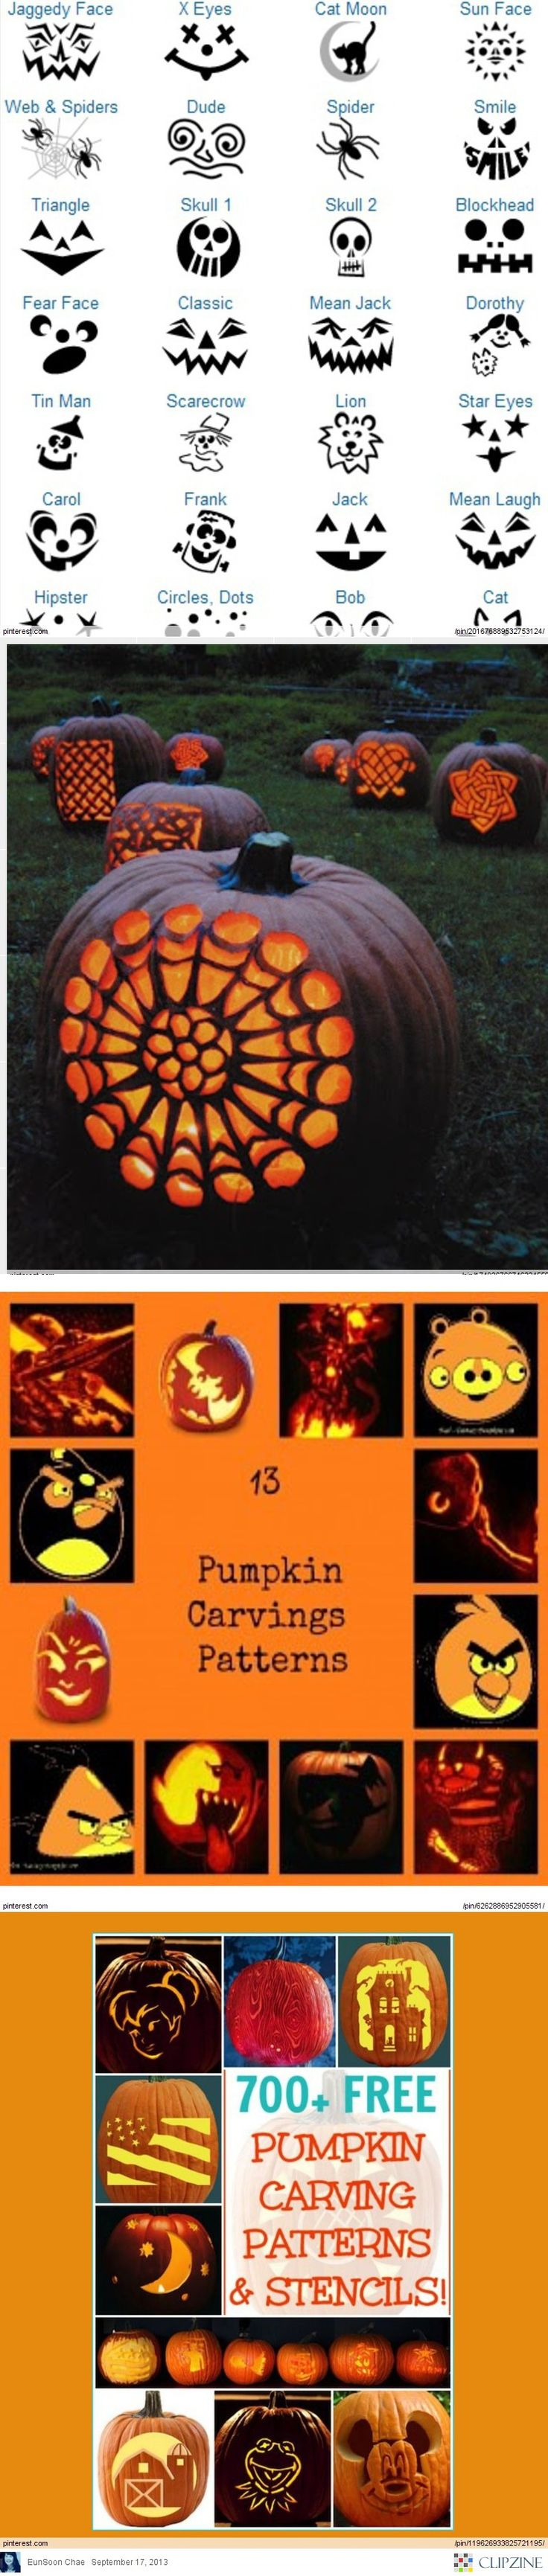 Pumpkin Carving Patterns~ awesome ideas to try!